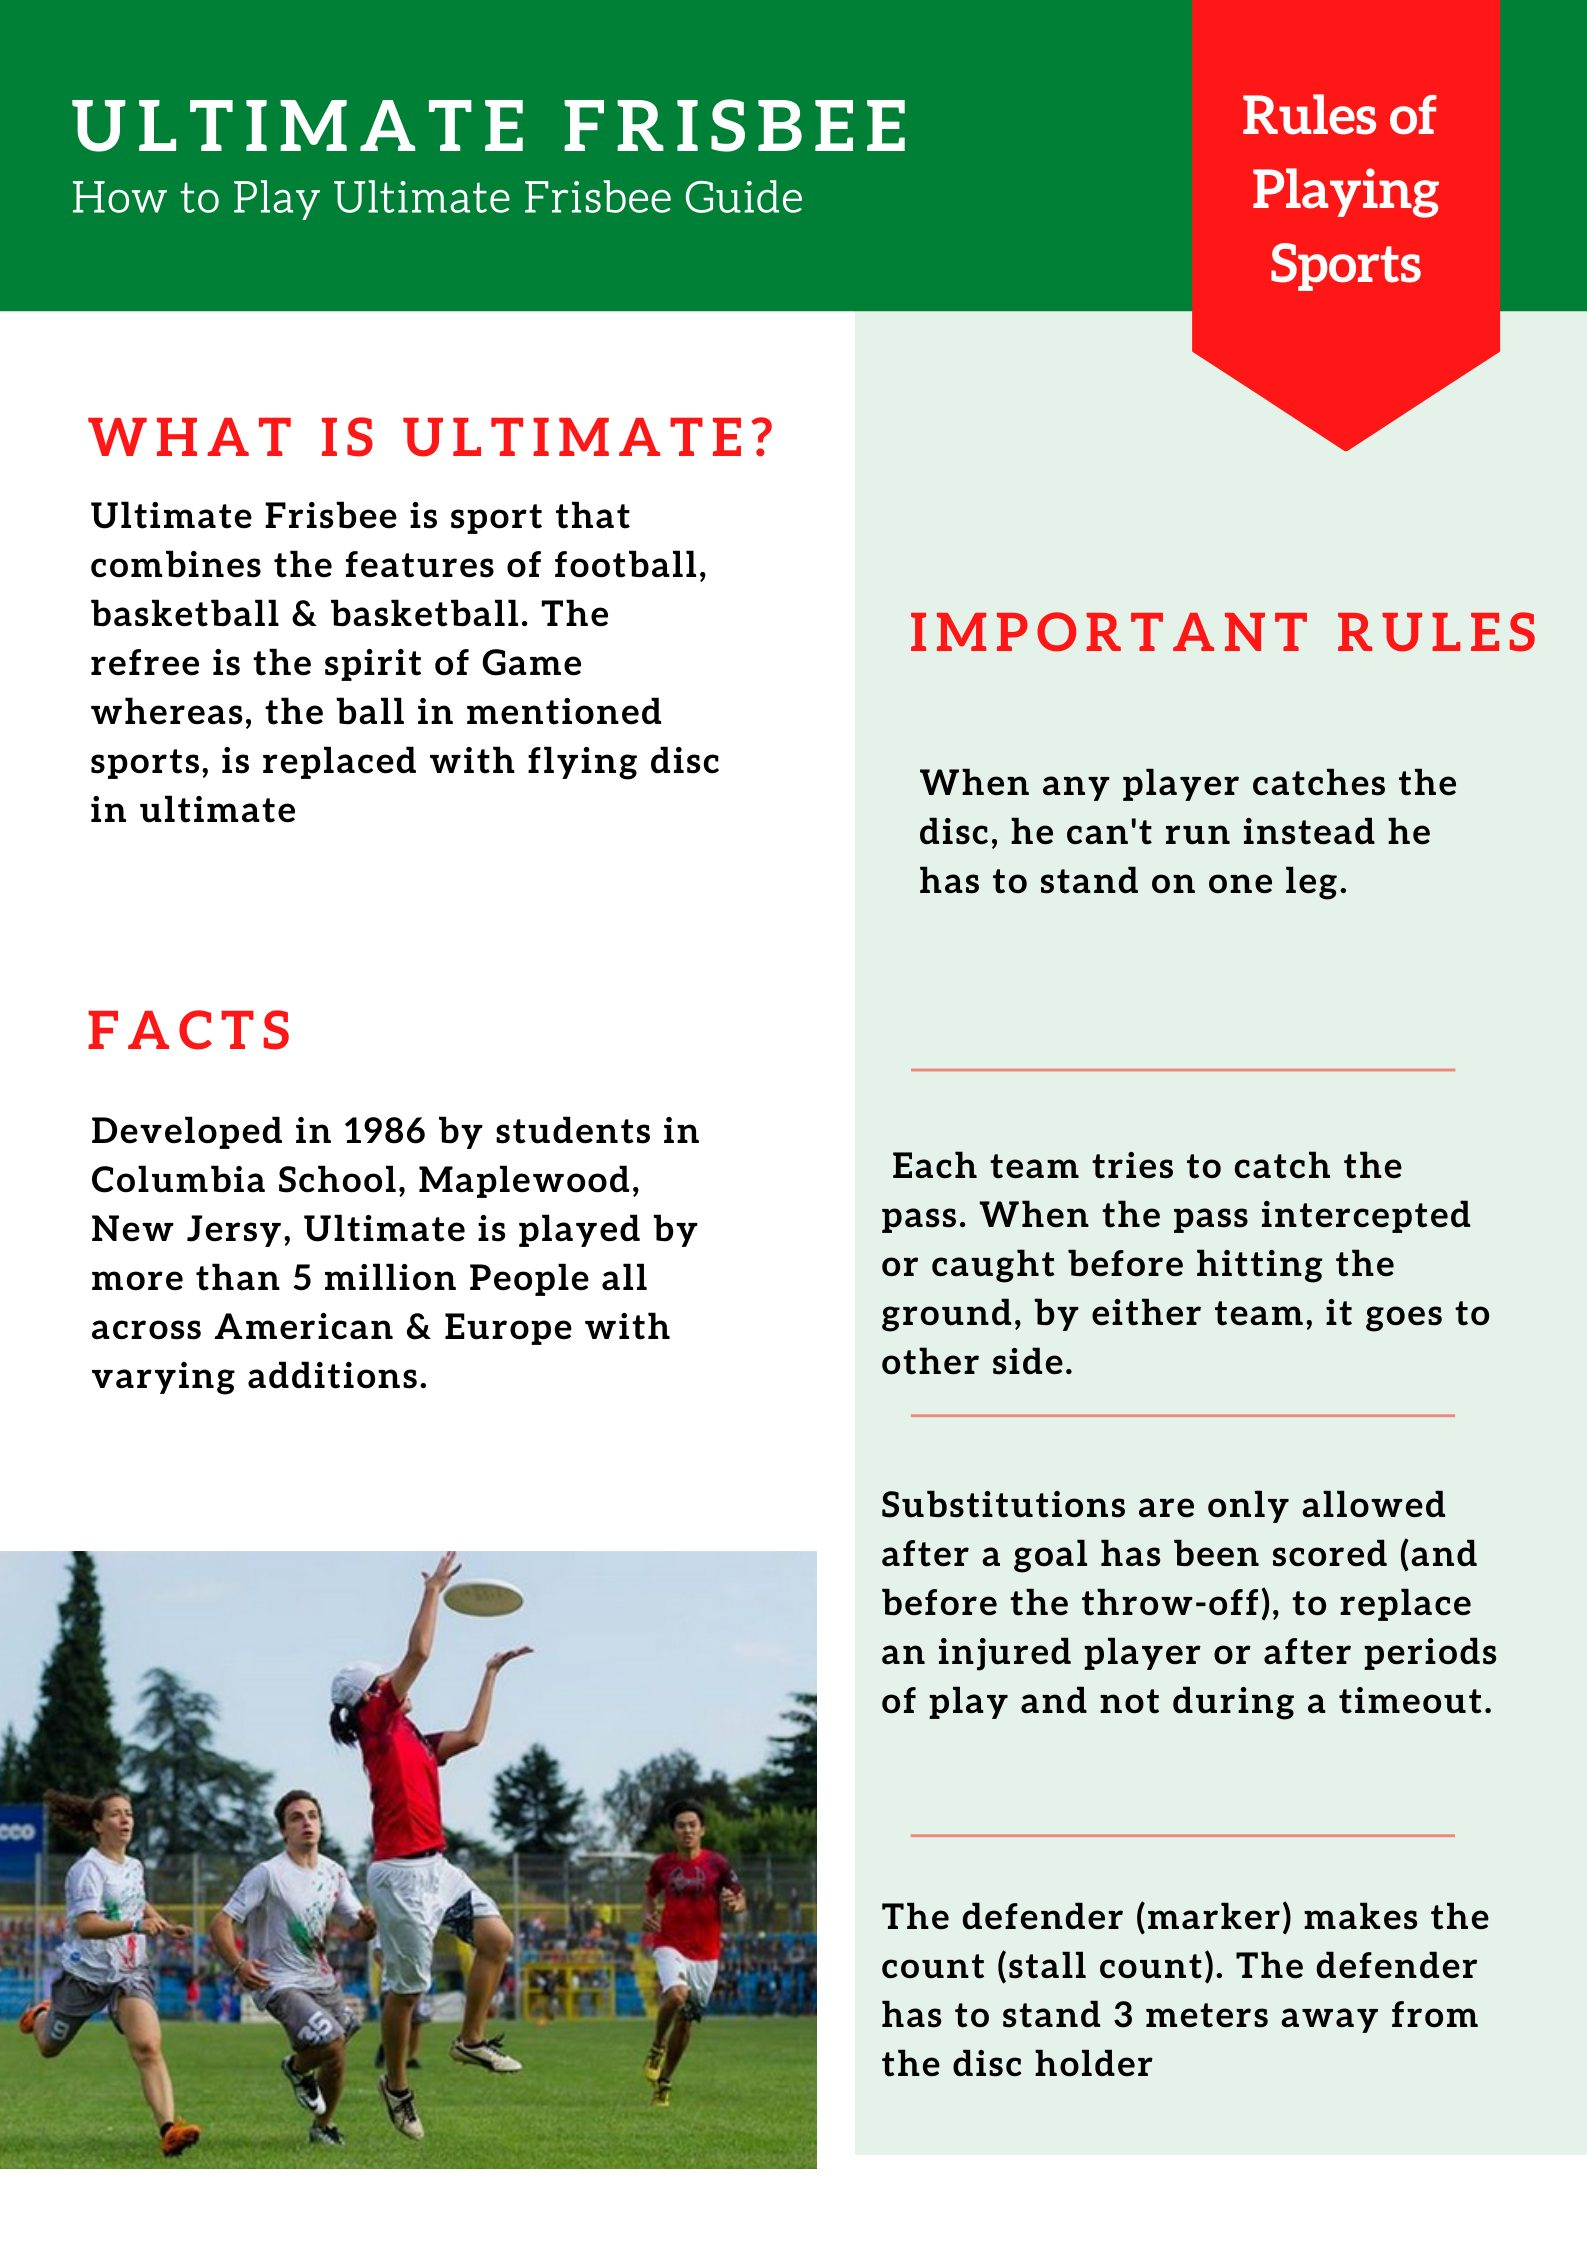 Ultimate Frisbee Rules, Players Guide, How to Play Ultimate